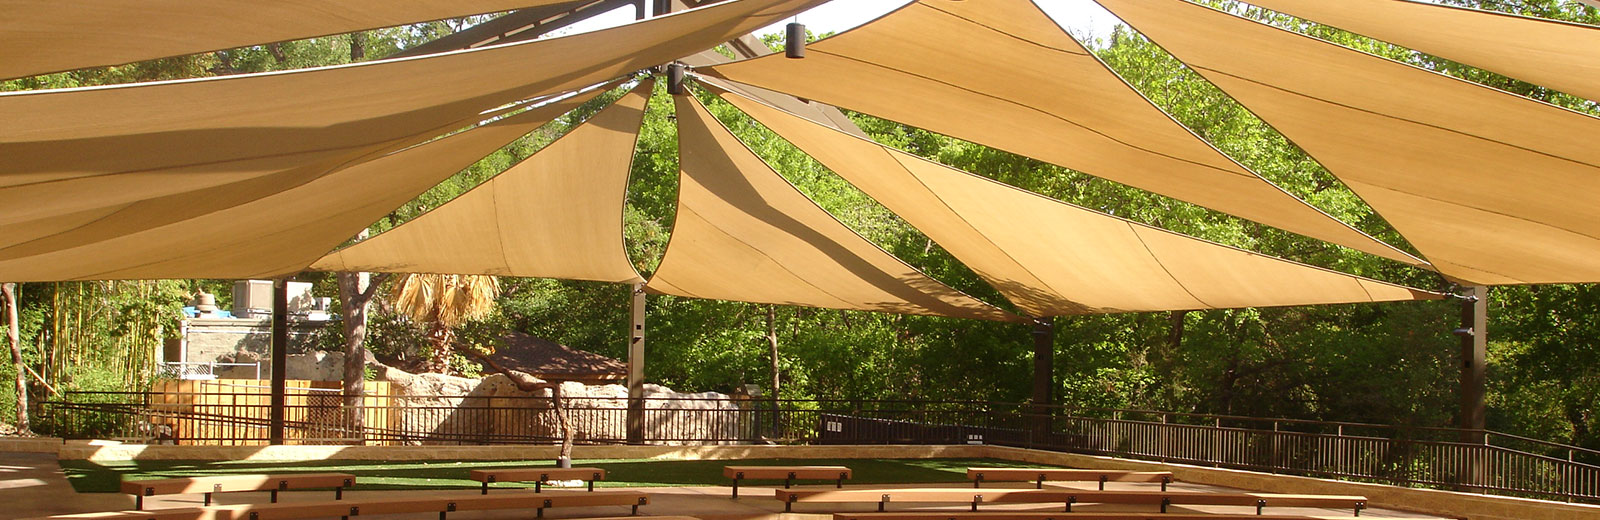 Shade Structure at Zoo